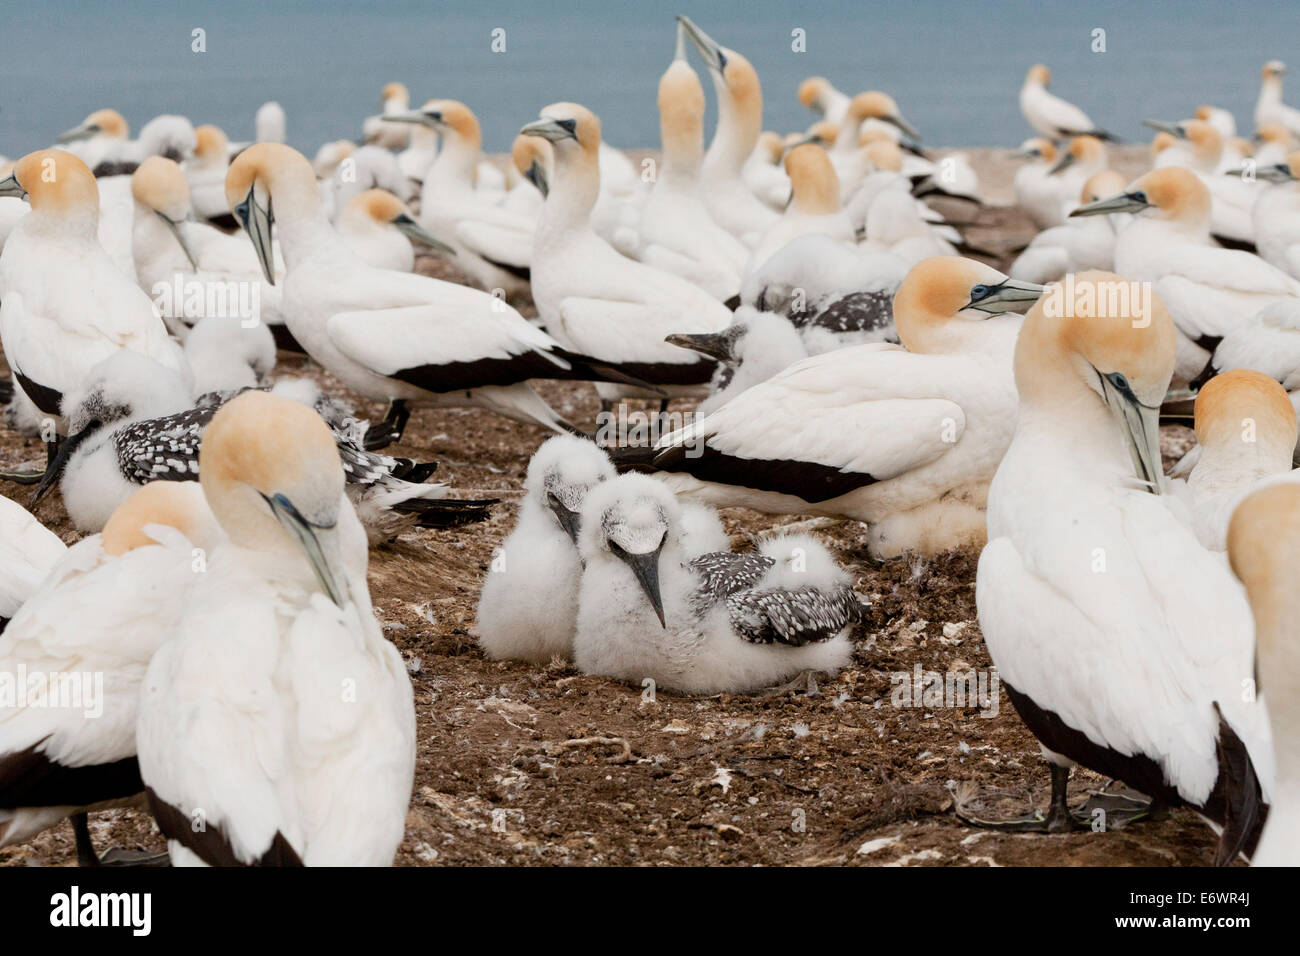 Breeding colony of Australiasian Gannets, Morus serrator at Cape Kidnappers Gannet Reserve, North Island, New Zealand - Stock Image